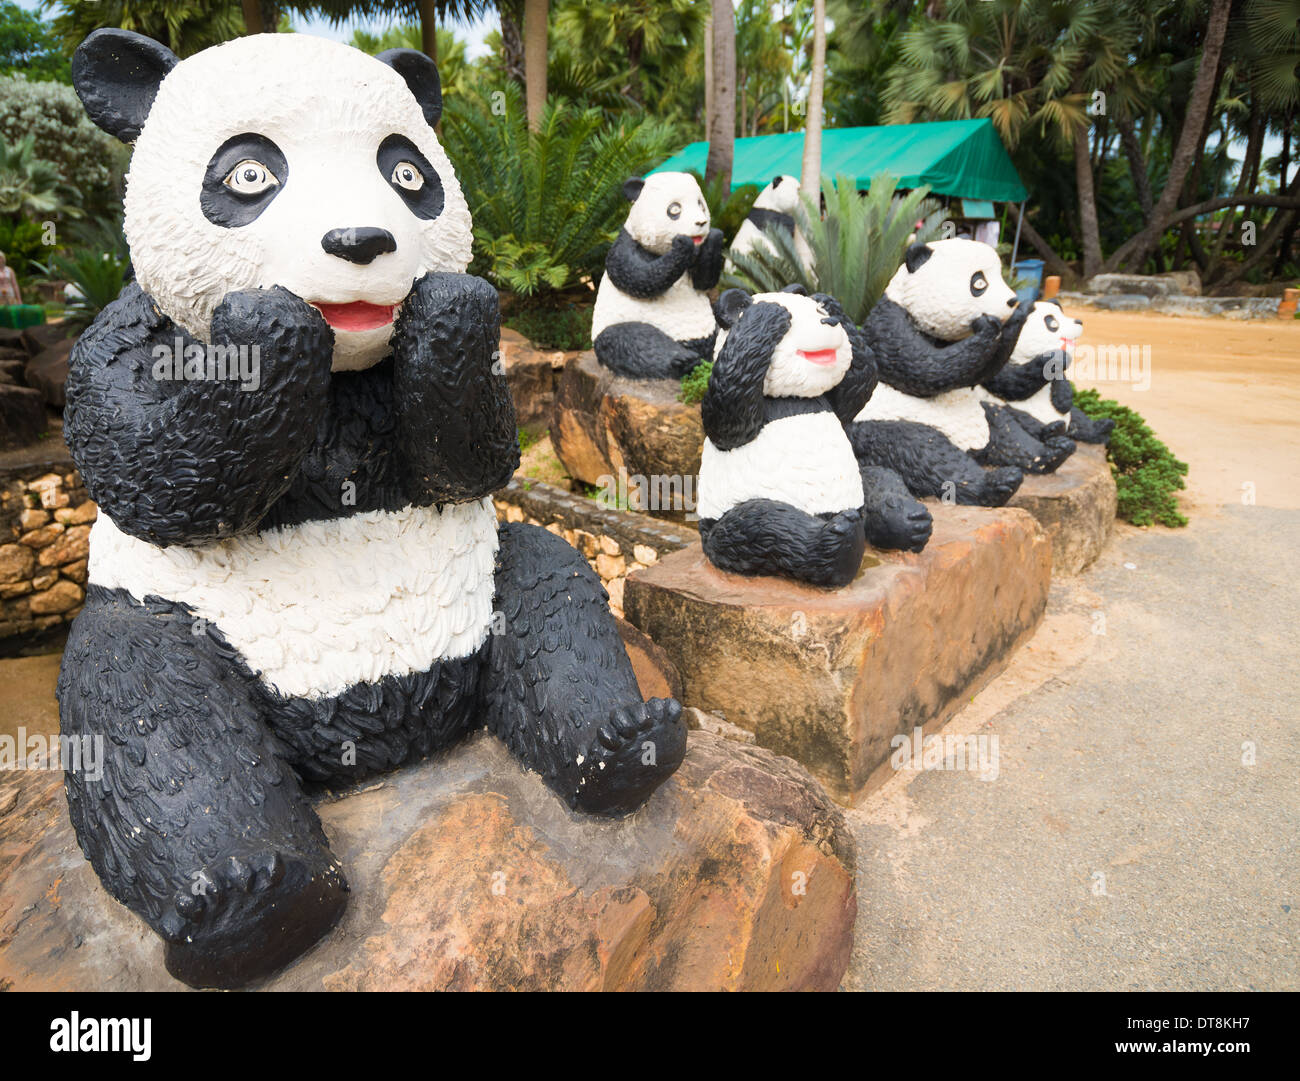 Panda Bears Sculptures, Nong Nooch Tropical Garden And Resort, Thailand